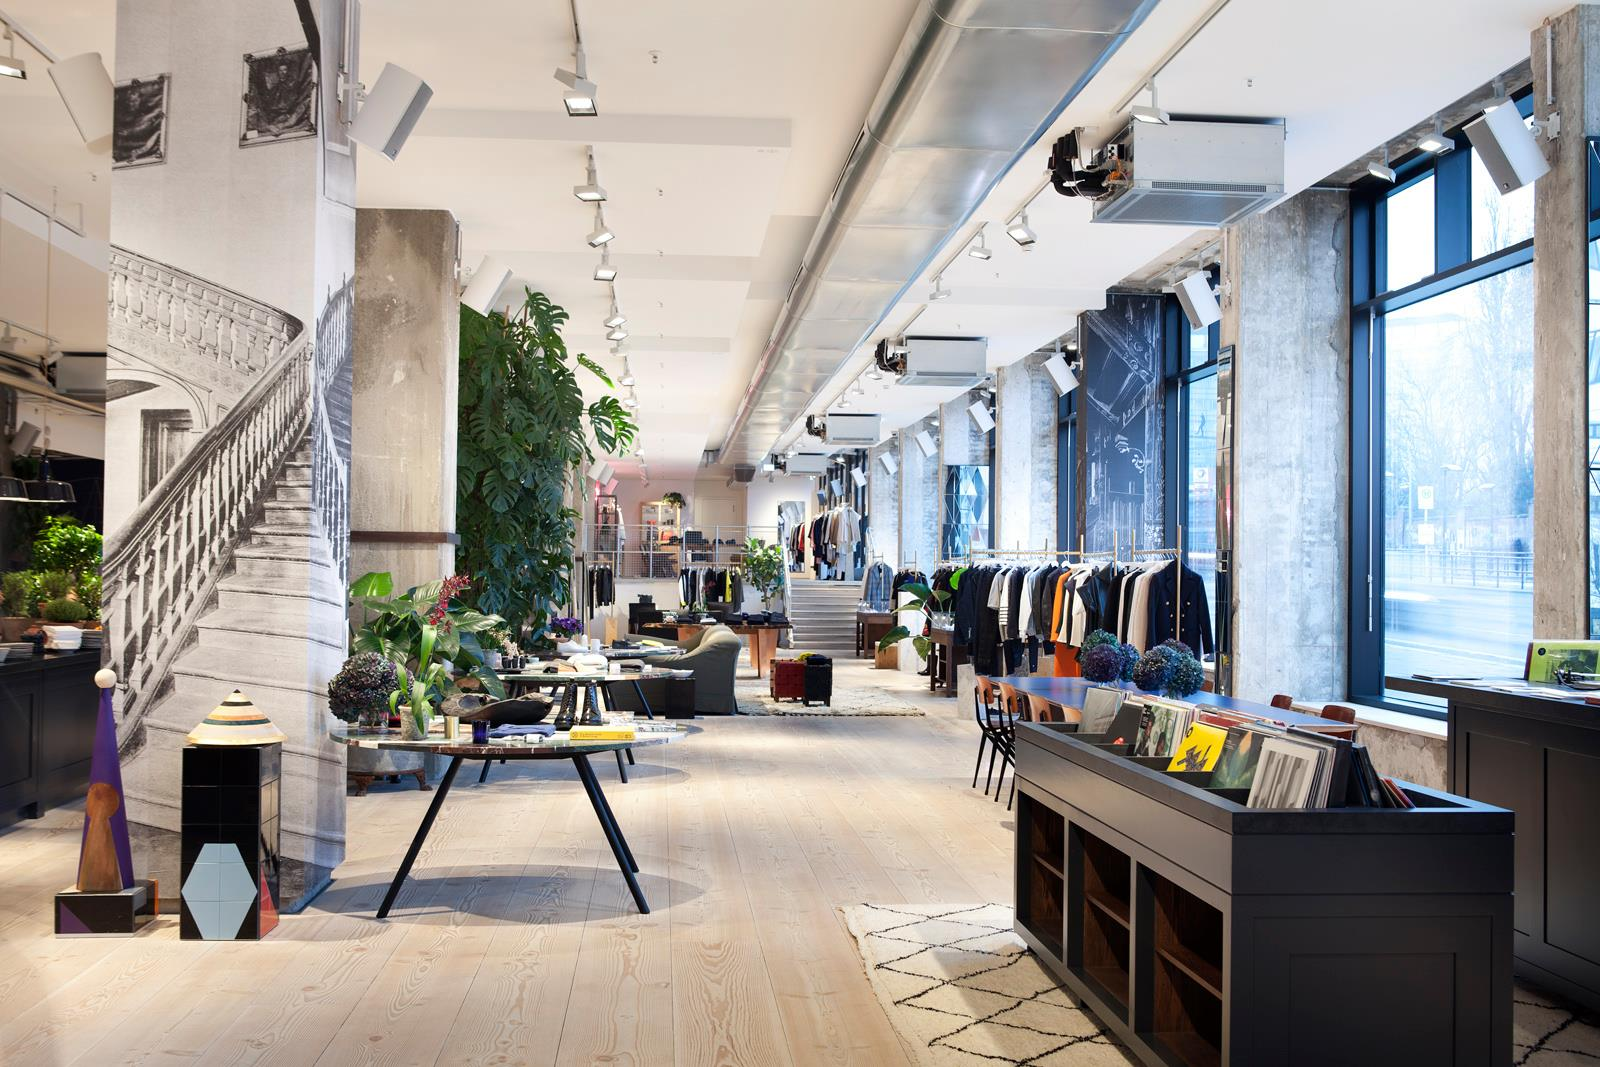 Berlin Shopping Guide – Torstrasse the coolest street in Mitte